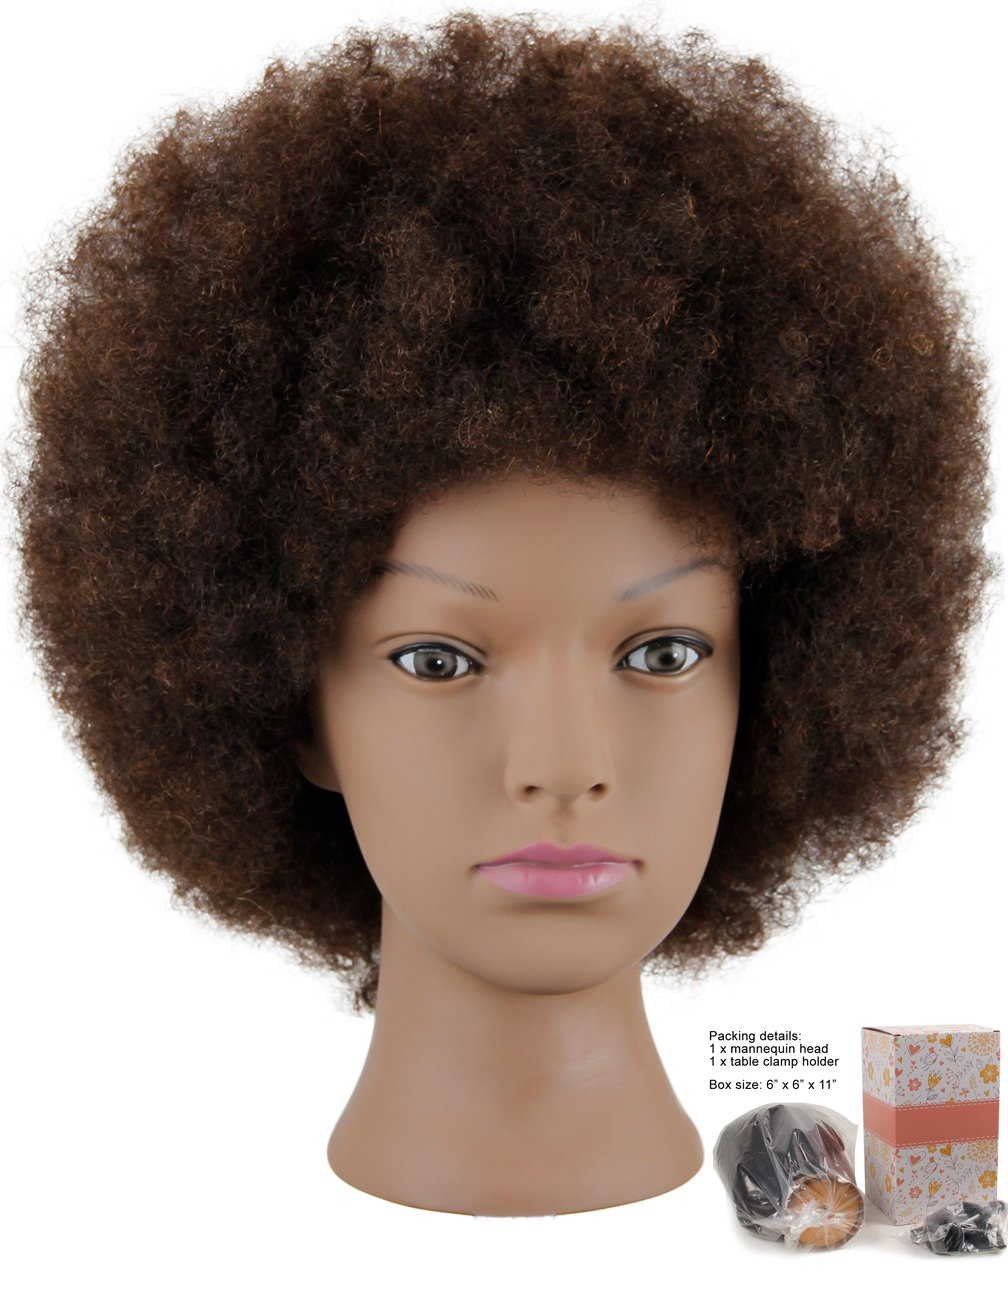 Kalyx Mannequin Head African American with 100% Human Hair Cosmetology Afro Hair Manikin Head for Practice Styling Braiding by Kalyx